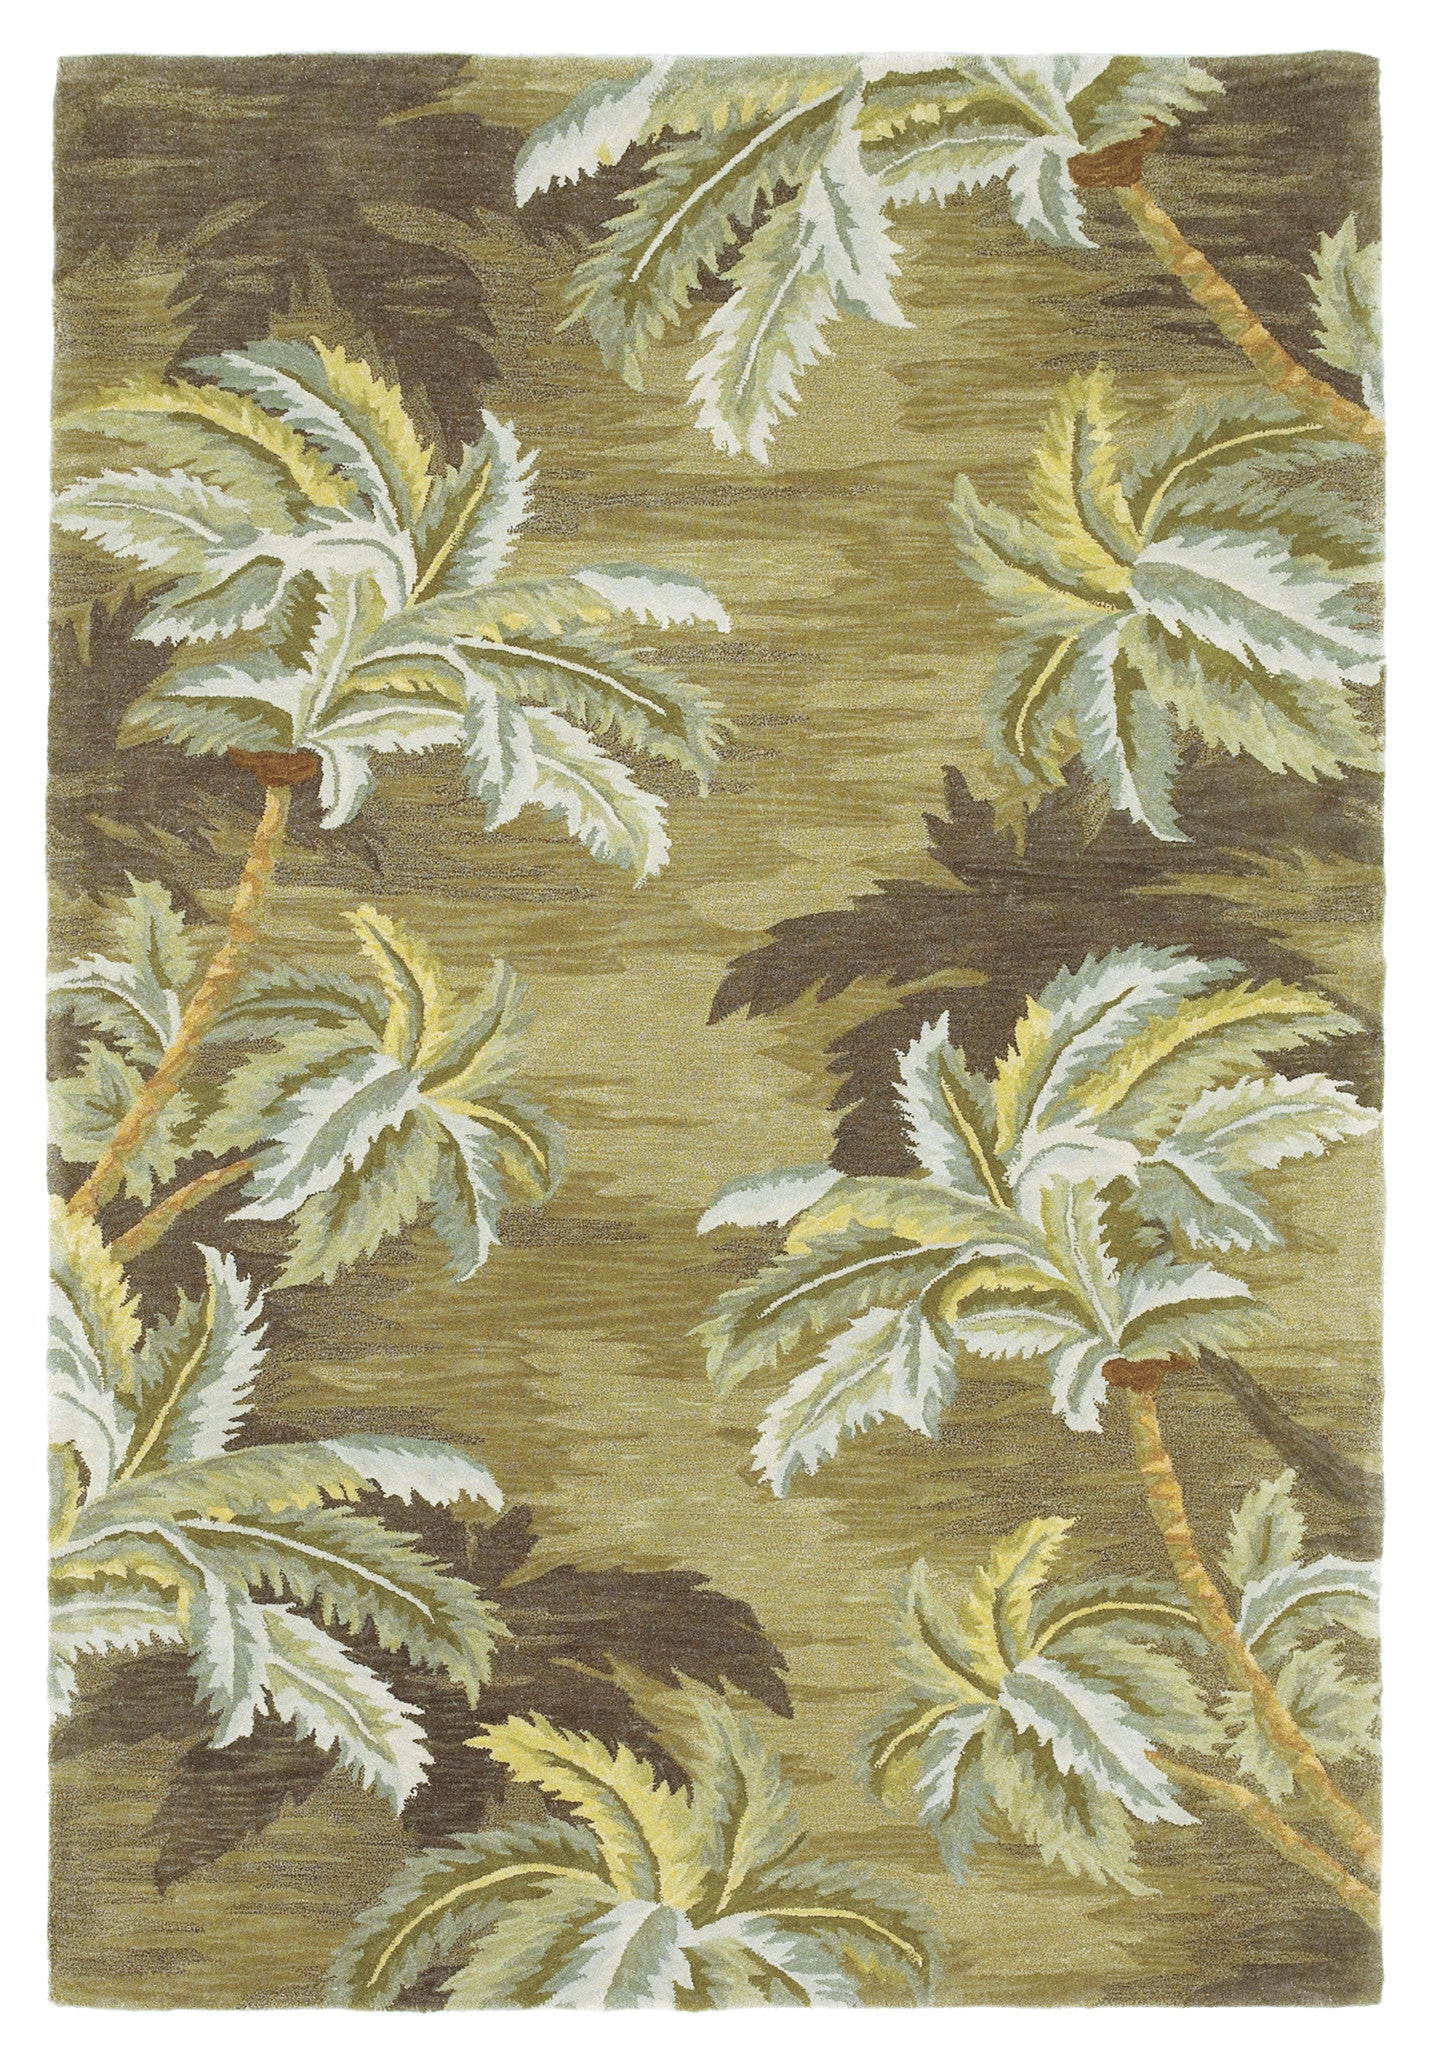 KAS Sparta 3102 Moss Palm Trees Hand Tufted Area Rug